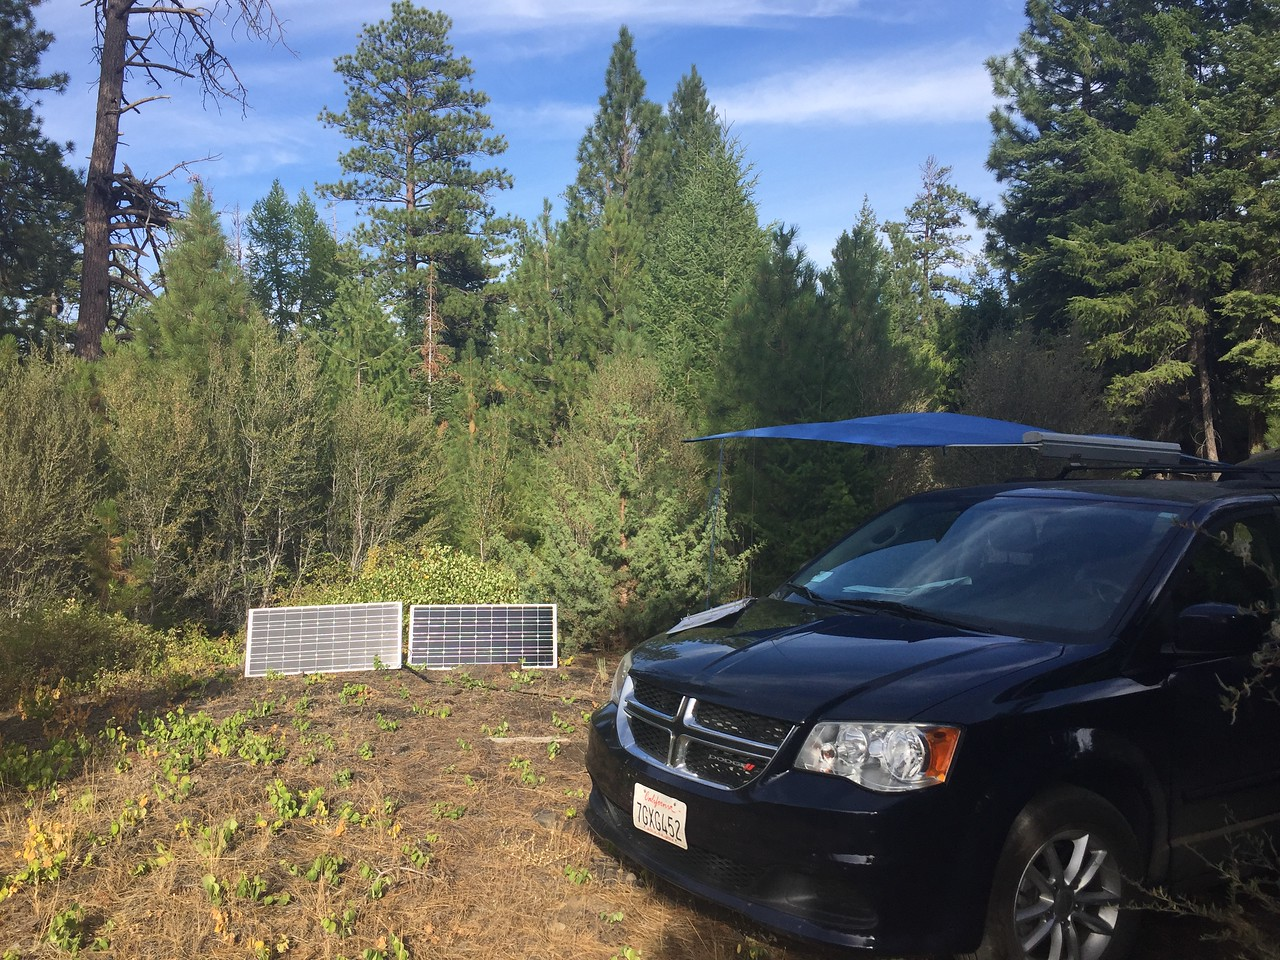 Lost Campers van with Solar